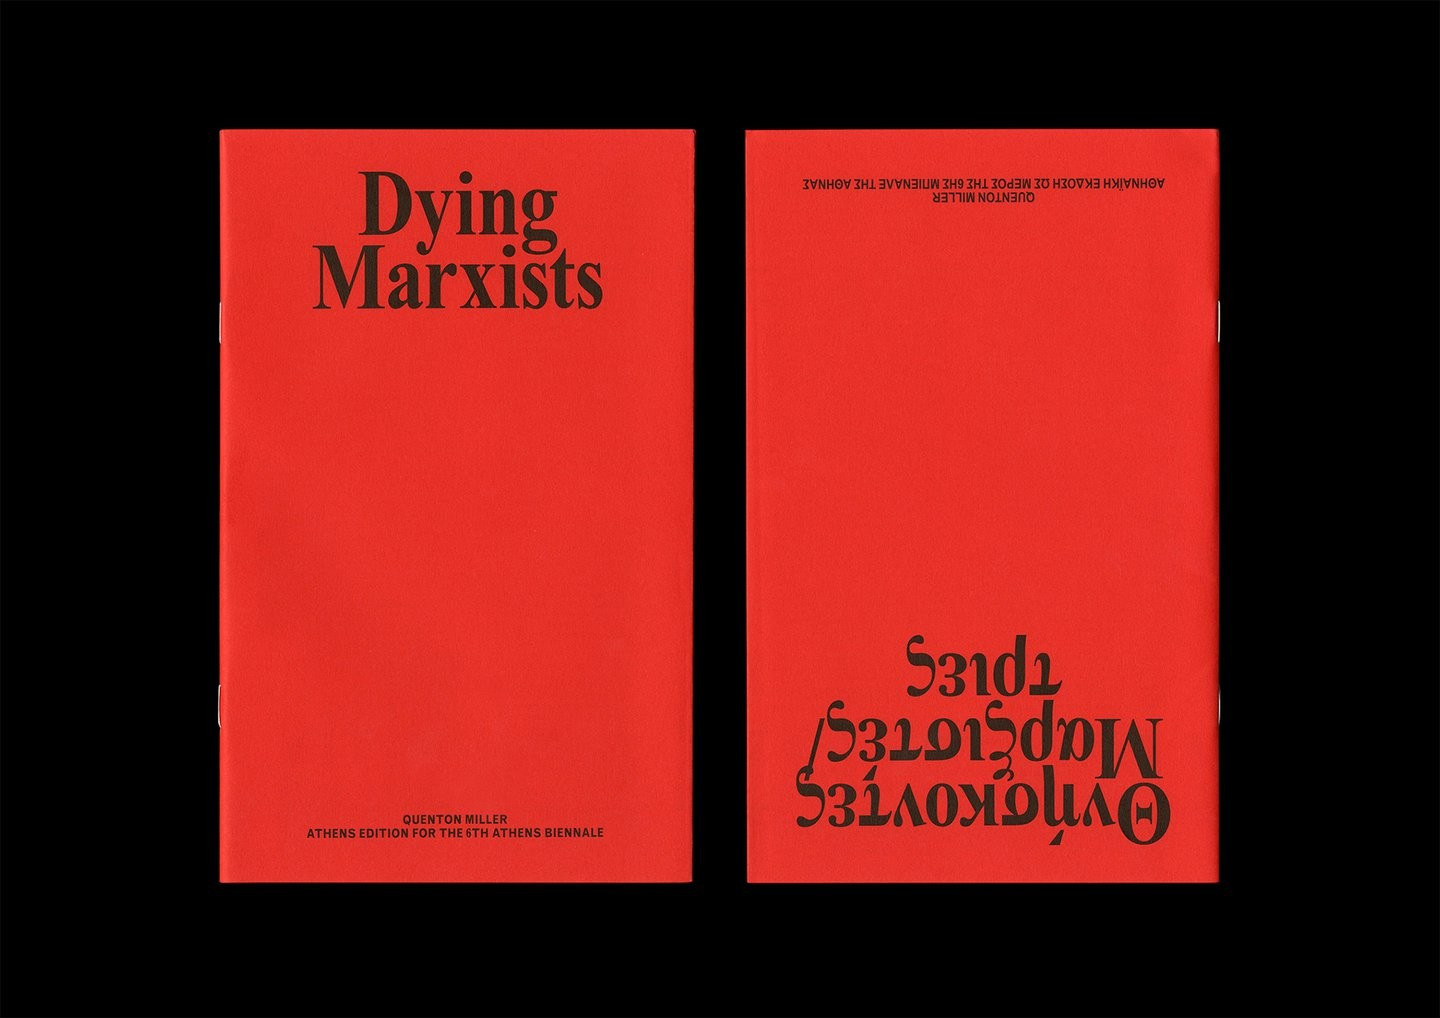 8_dying_marxists_-_quenton_miller_-_athens_biennale_1_copy.jpg